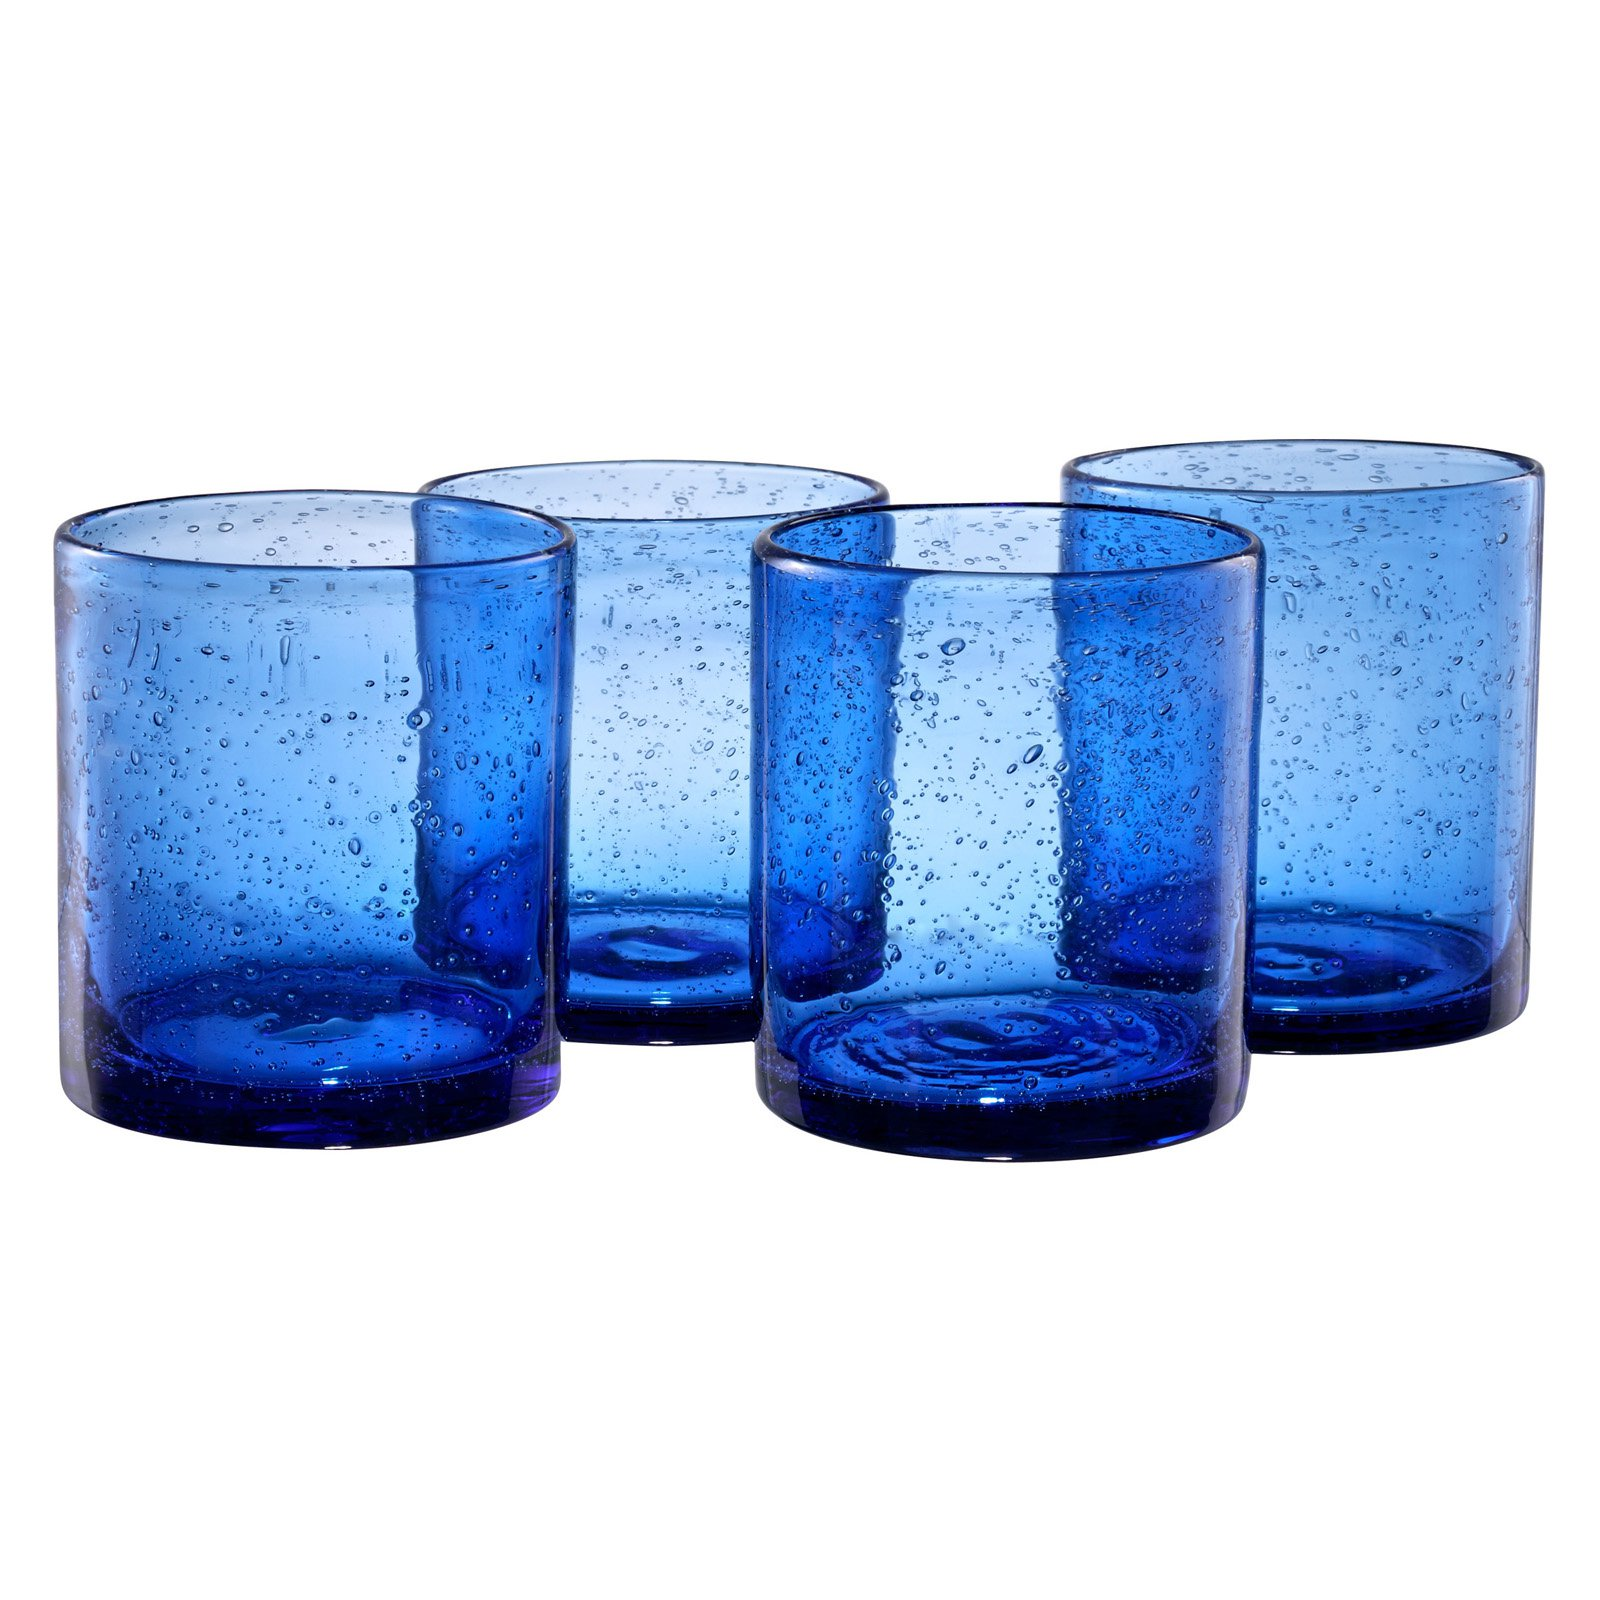 Artland Inc. Iris Cobalt DOF Glasses - Set of 4